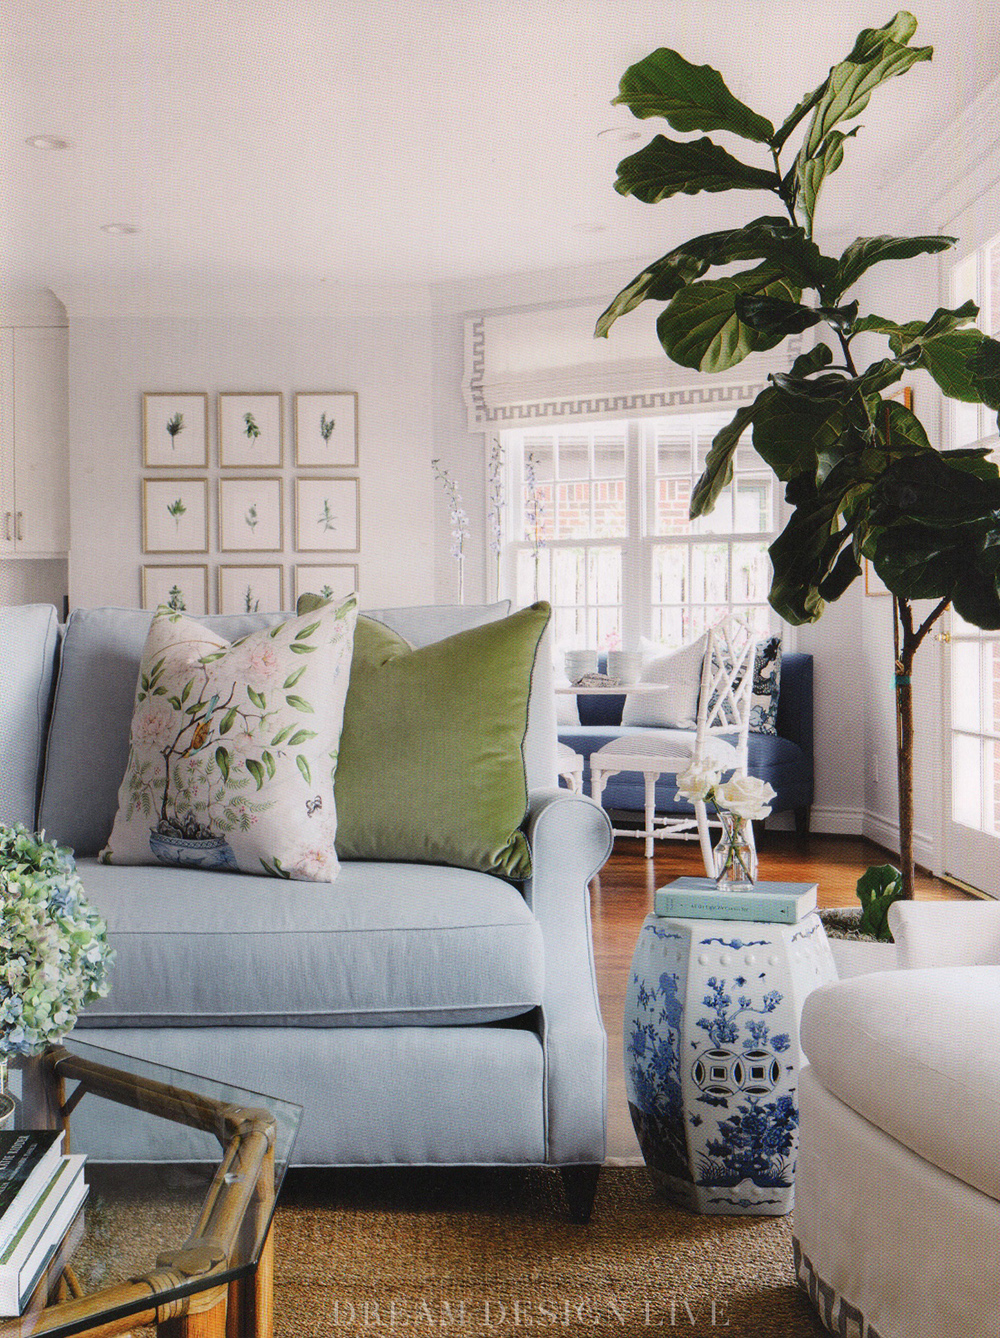 Chic blue and green living room from Dream Design Live, Paloma Contreras' fantastic new interior design book